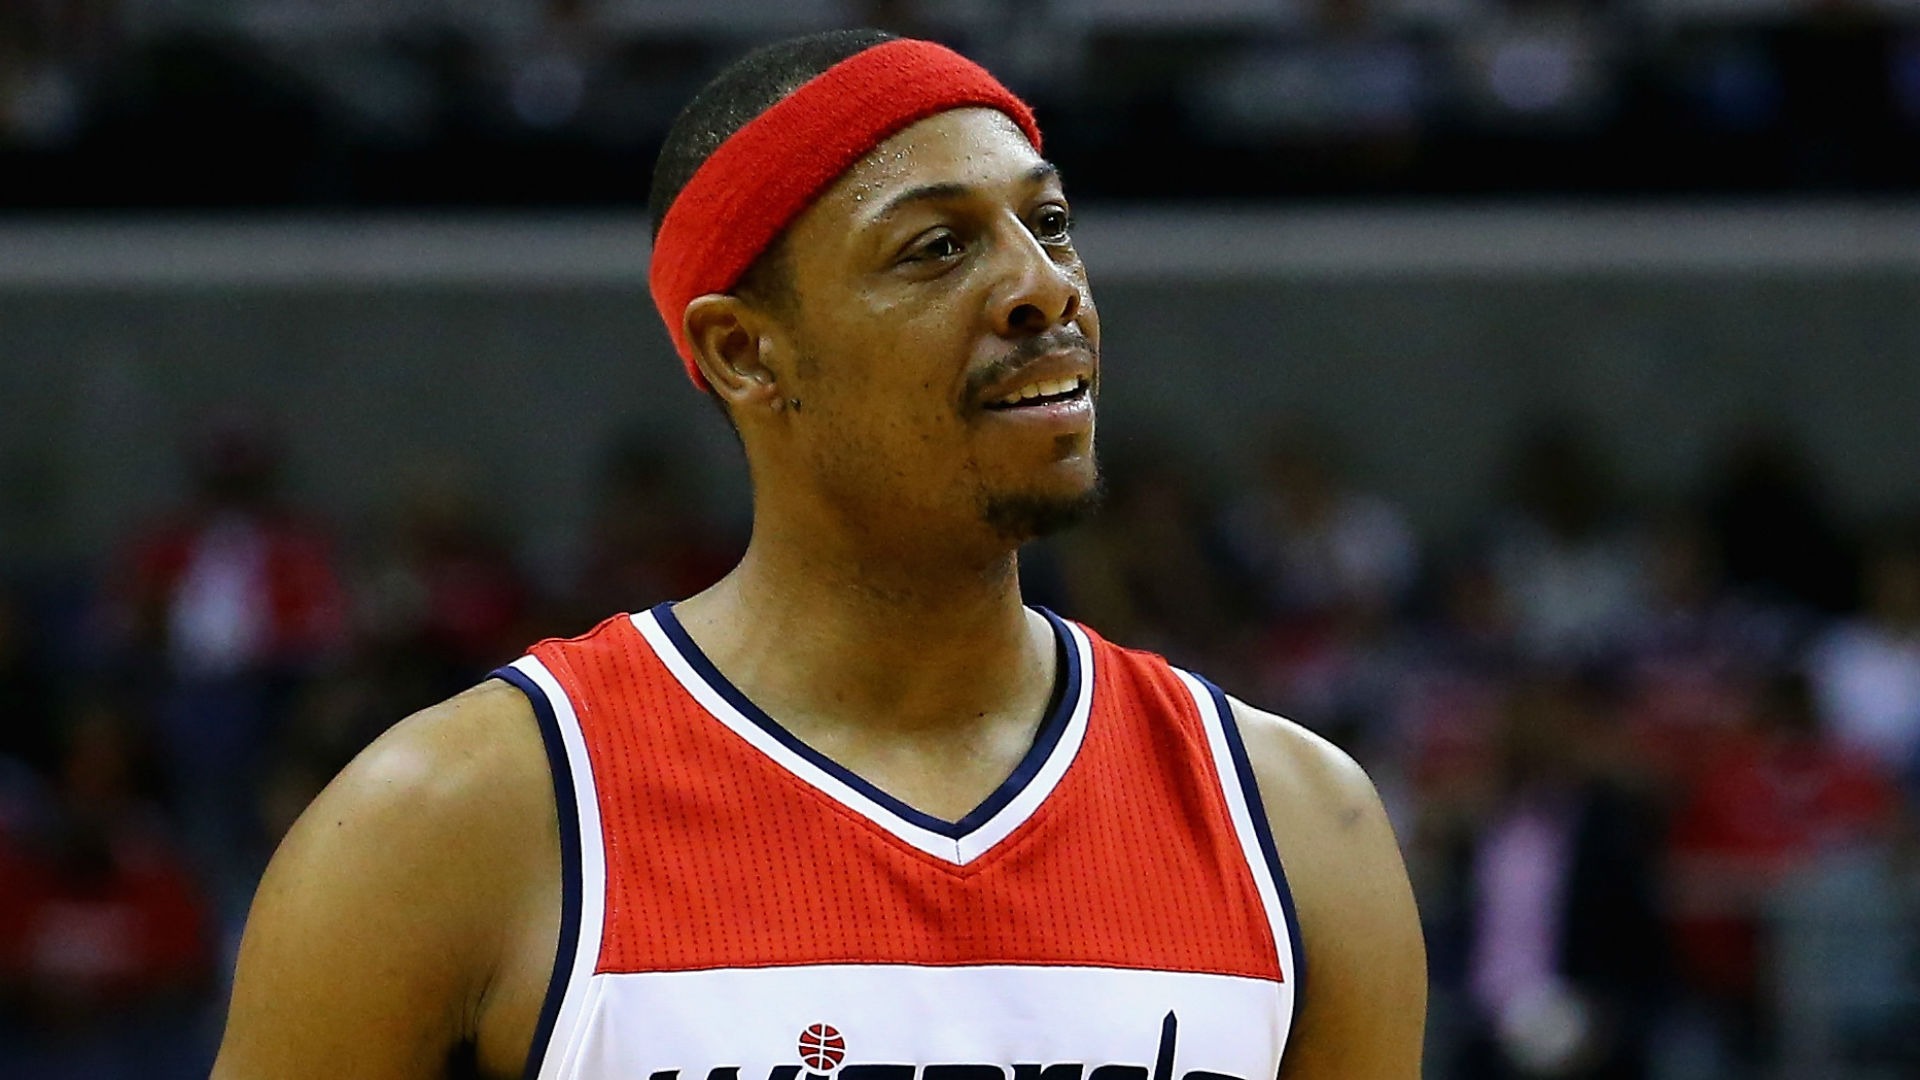 Paul Pierce to the Clippers? Veteran could opt to leave Wizards